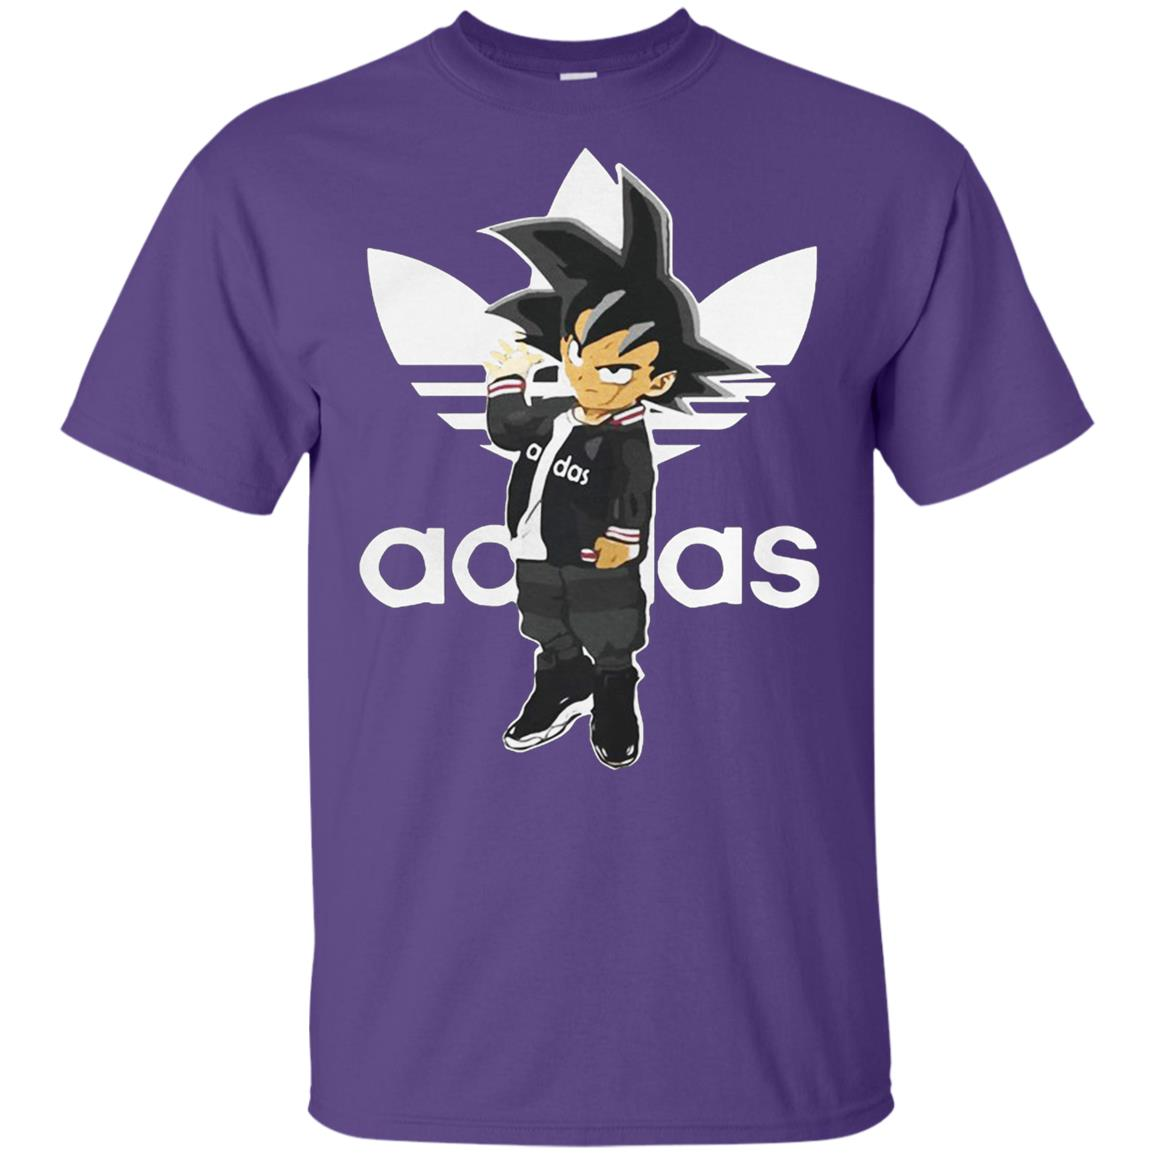 07436ffd21c27 Saiyan Adidas Goku Adidas Dragon Ball BDZ 2018 Youth T-Shirt